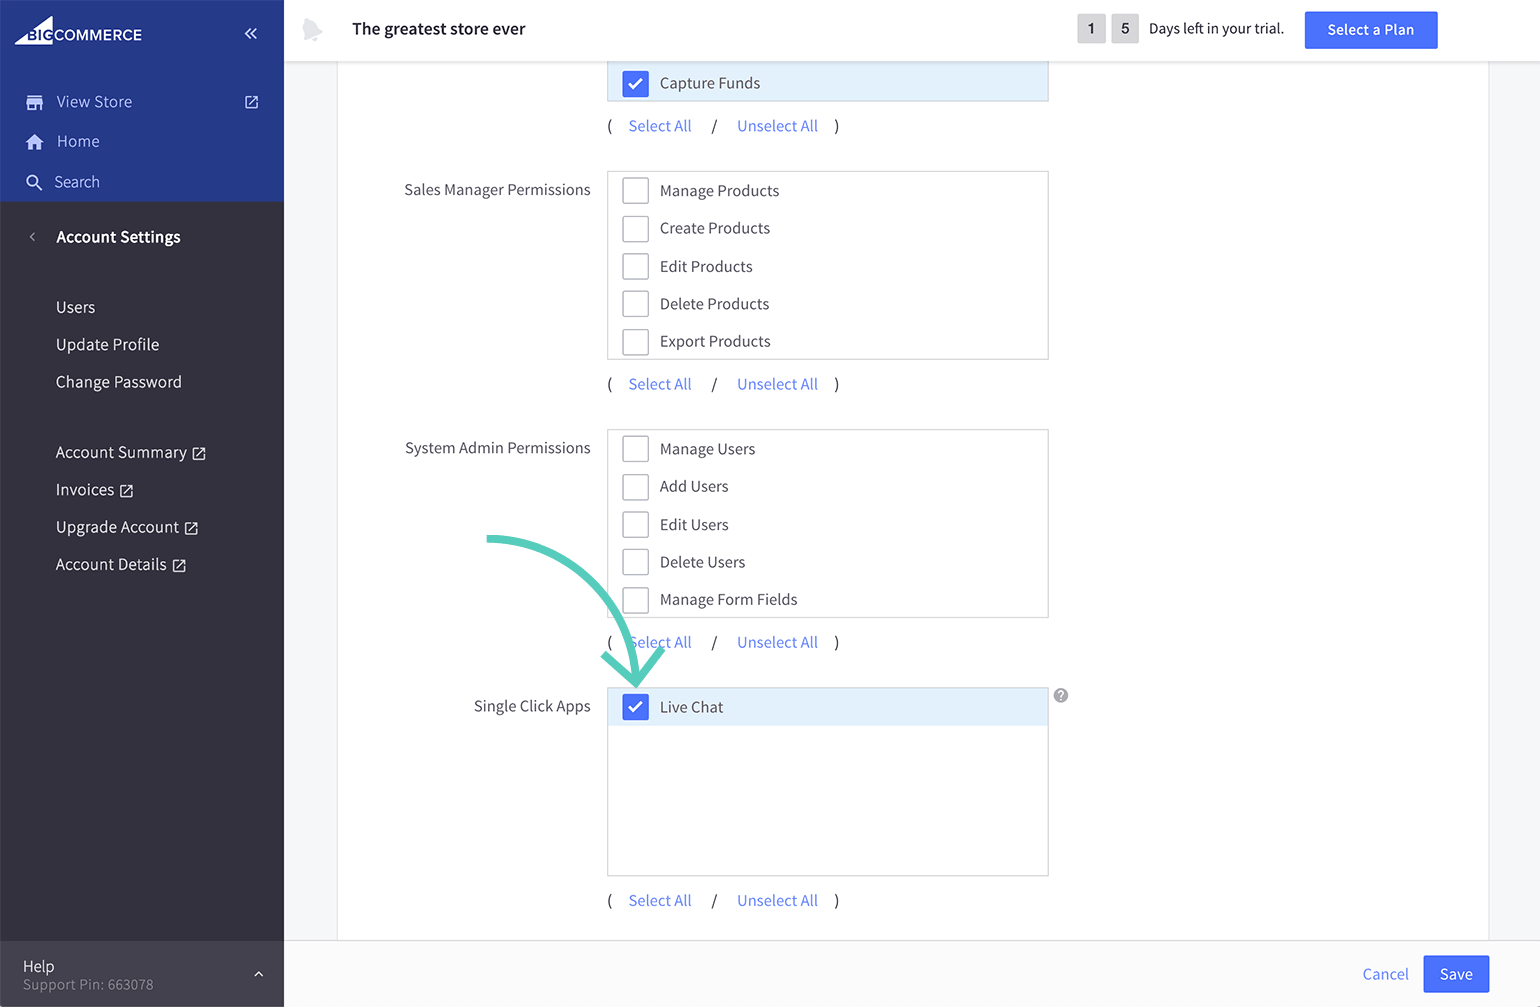 Add permission to edit LiveChat app